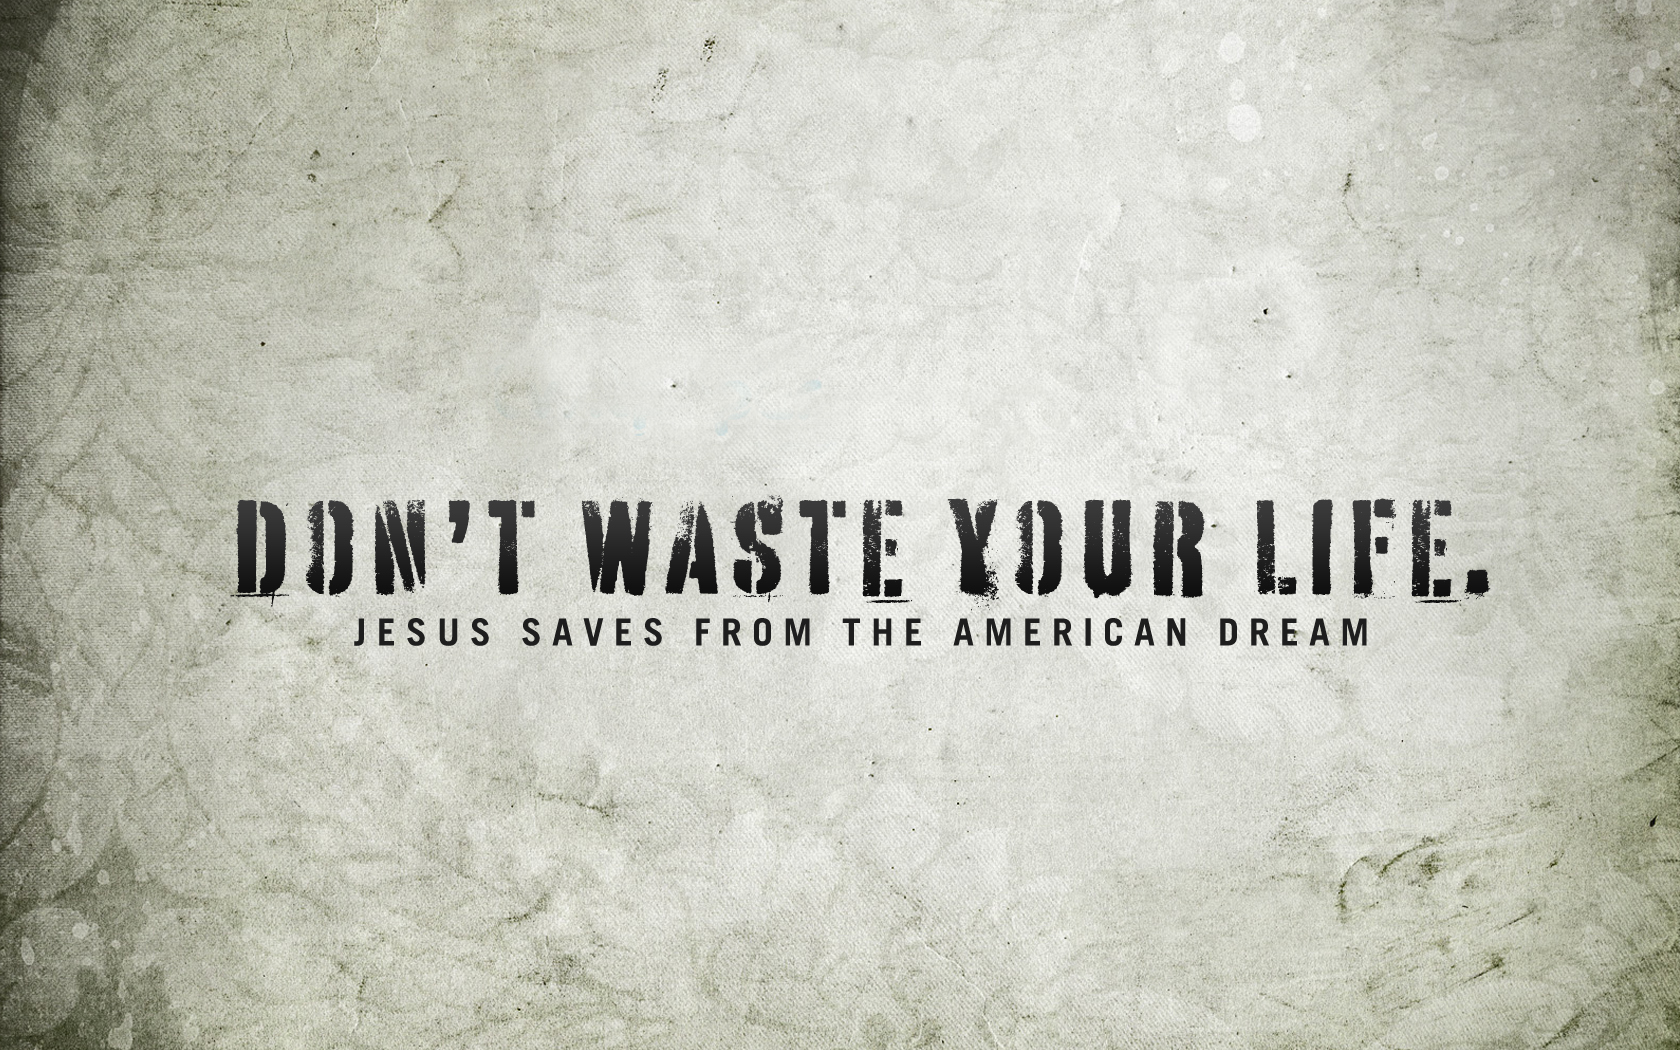 not waste your life Wallpaper   Christian Wallpapers and Backgrounds 1680x1050